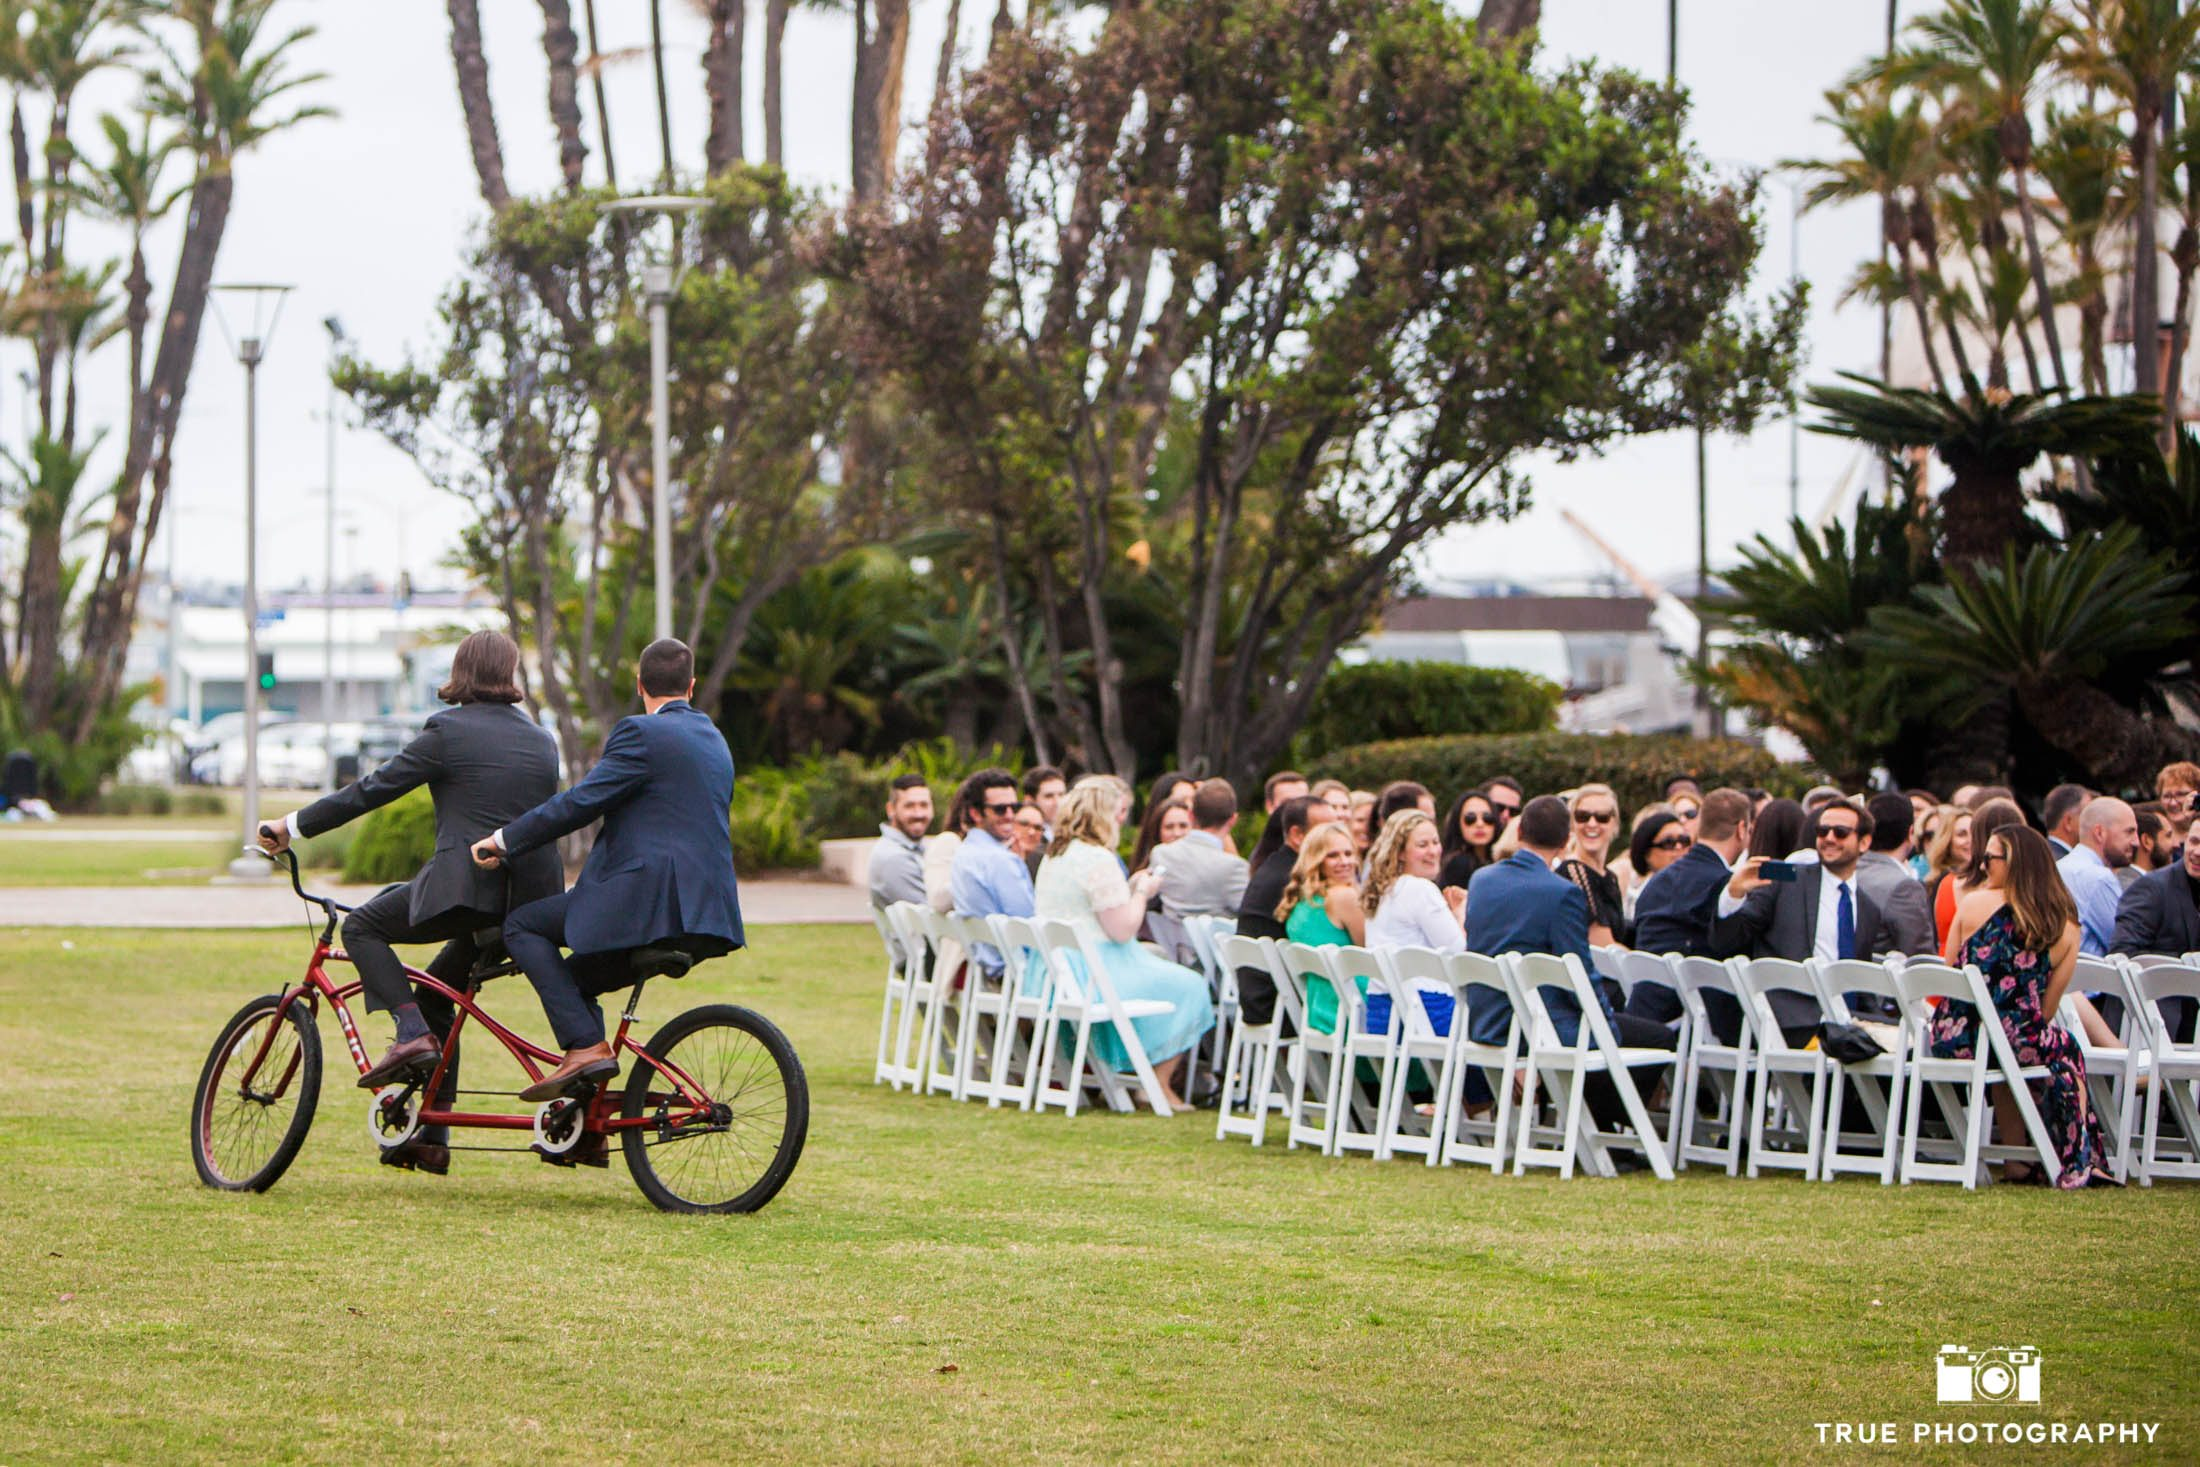 Groom and Officiant on Tandem Biicycle